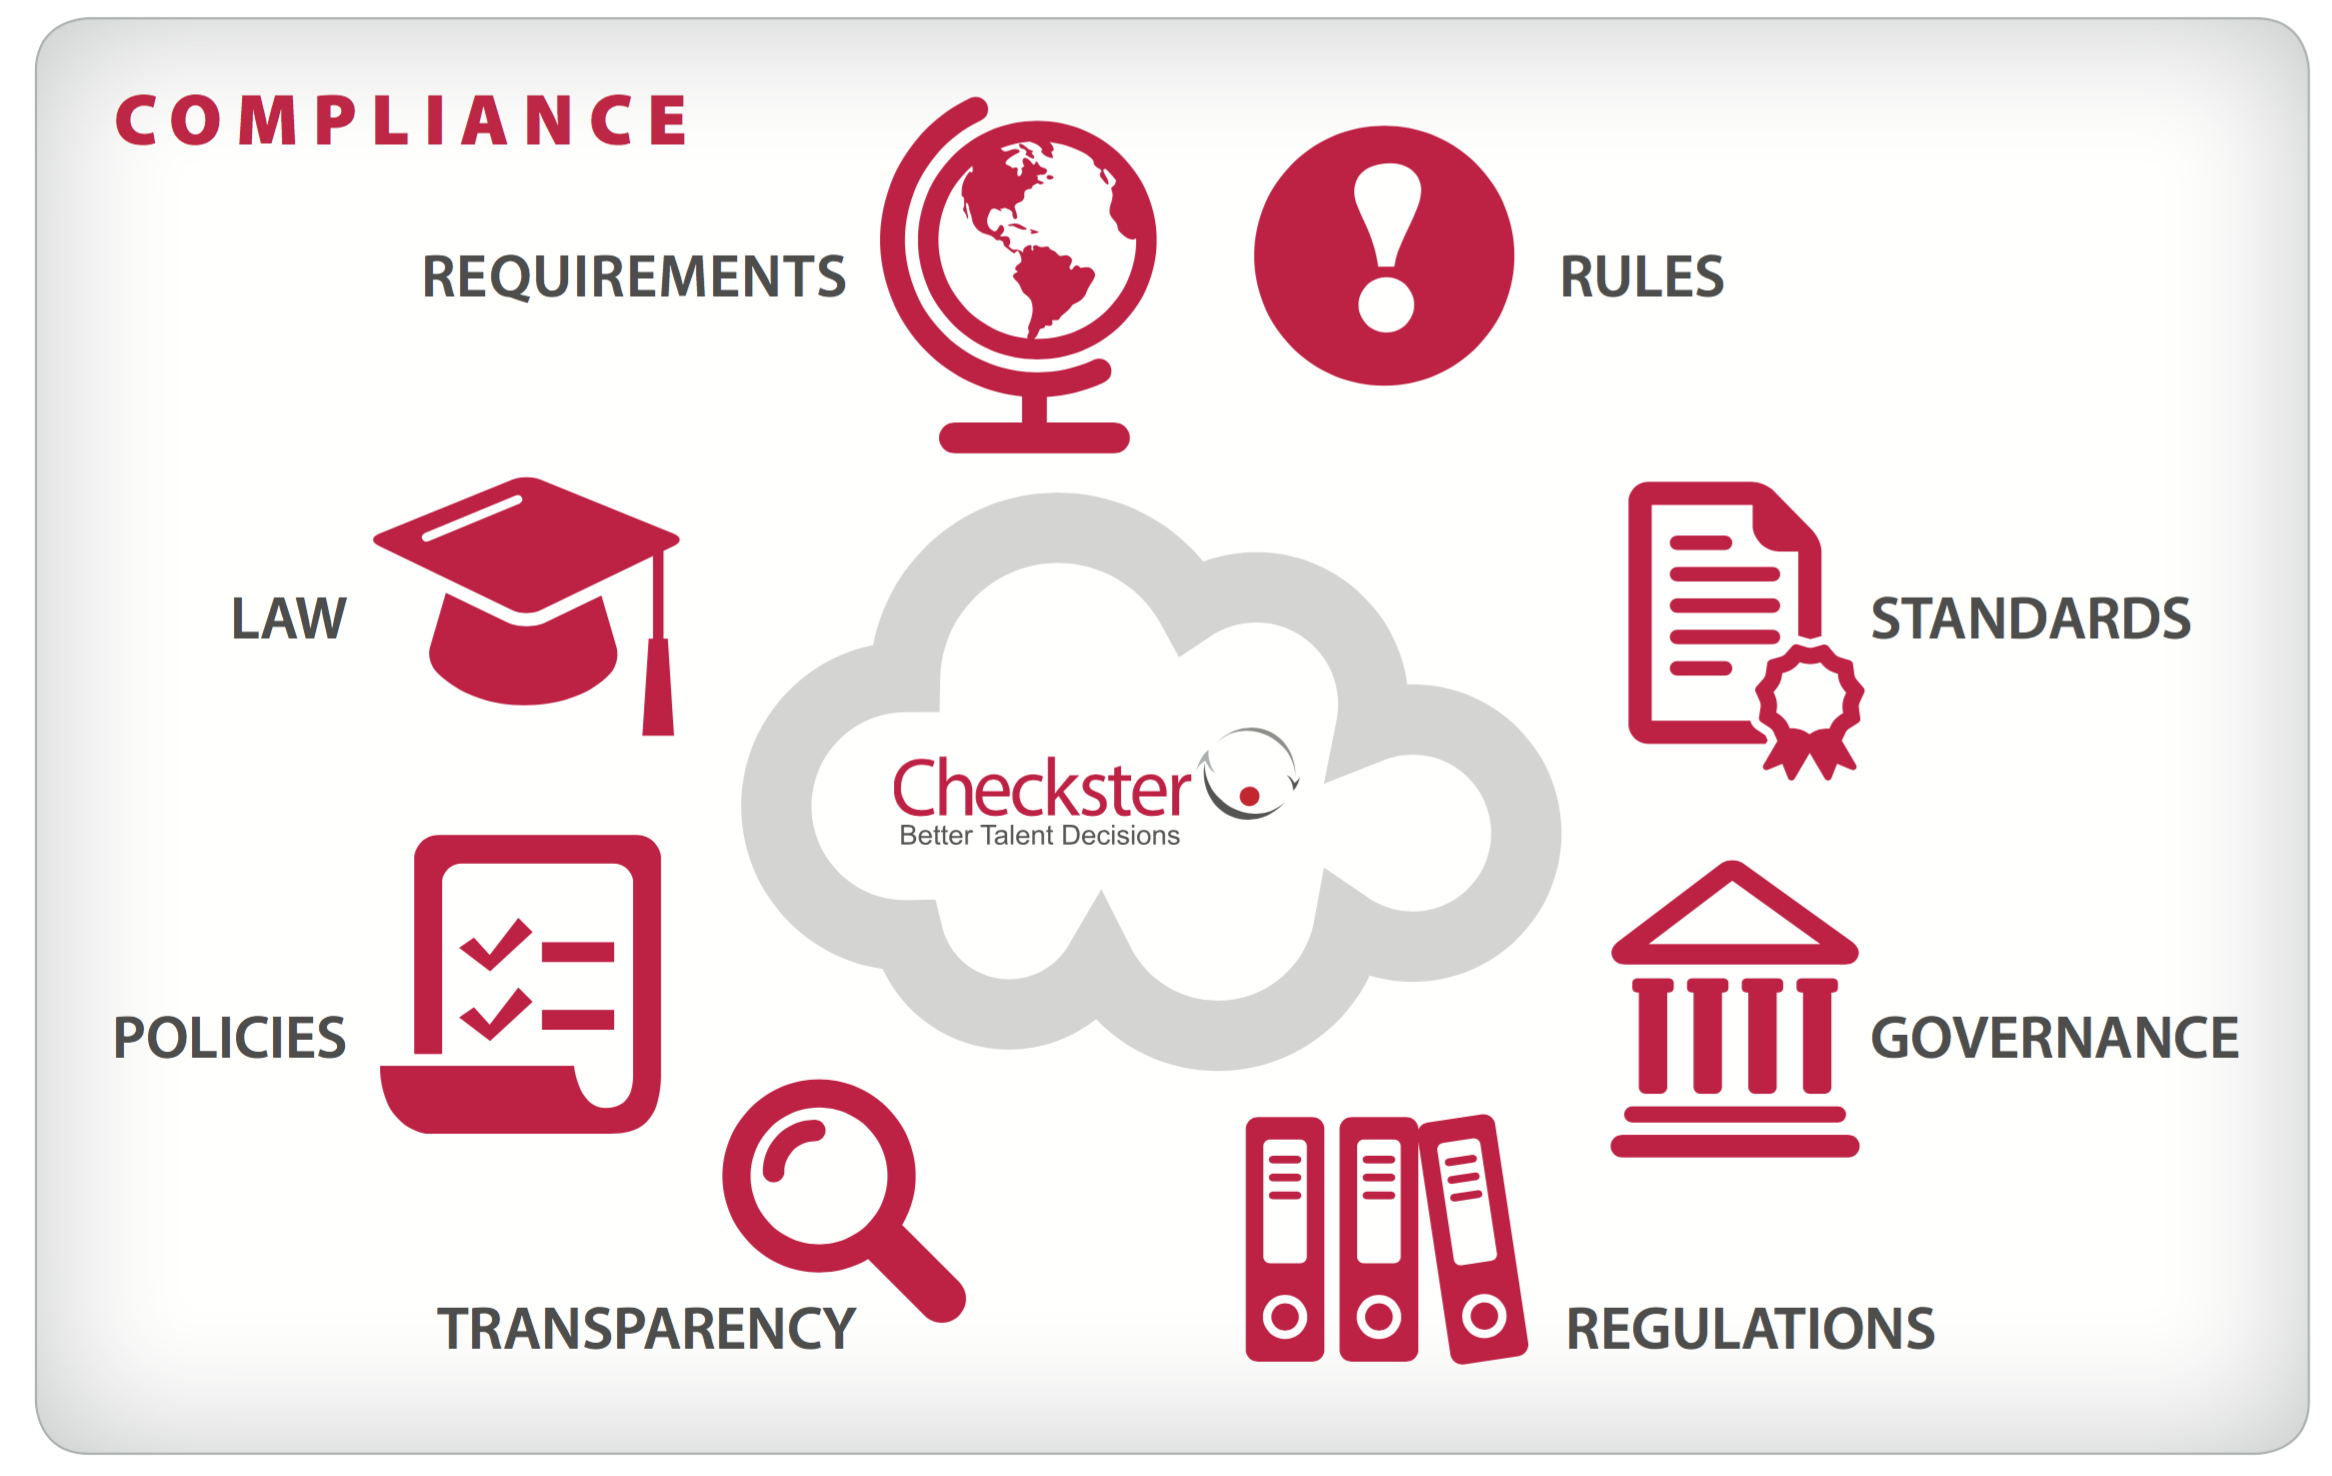 Stay Compliant through these processes